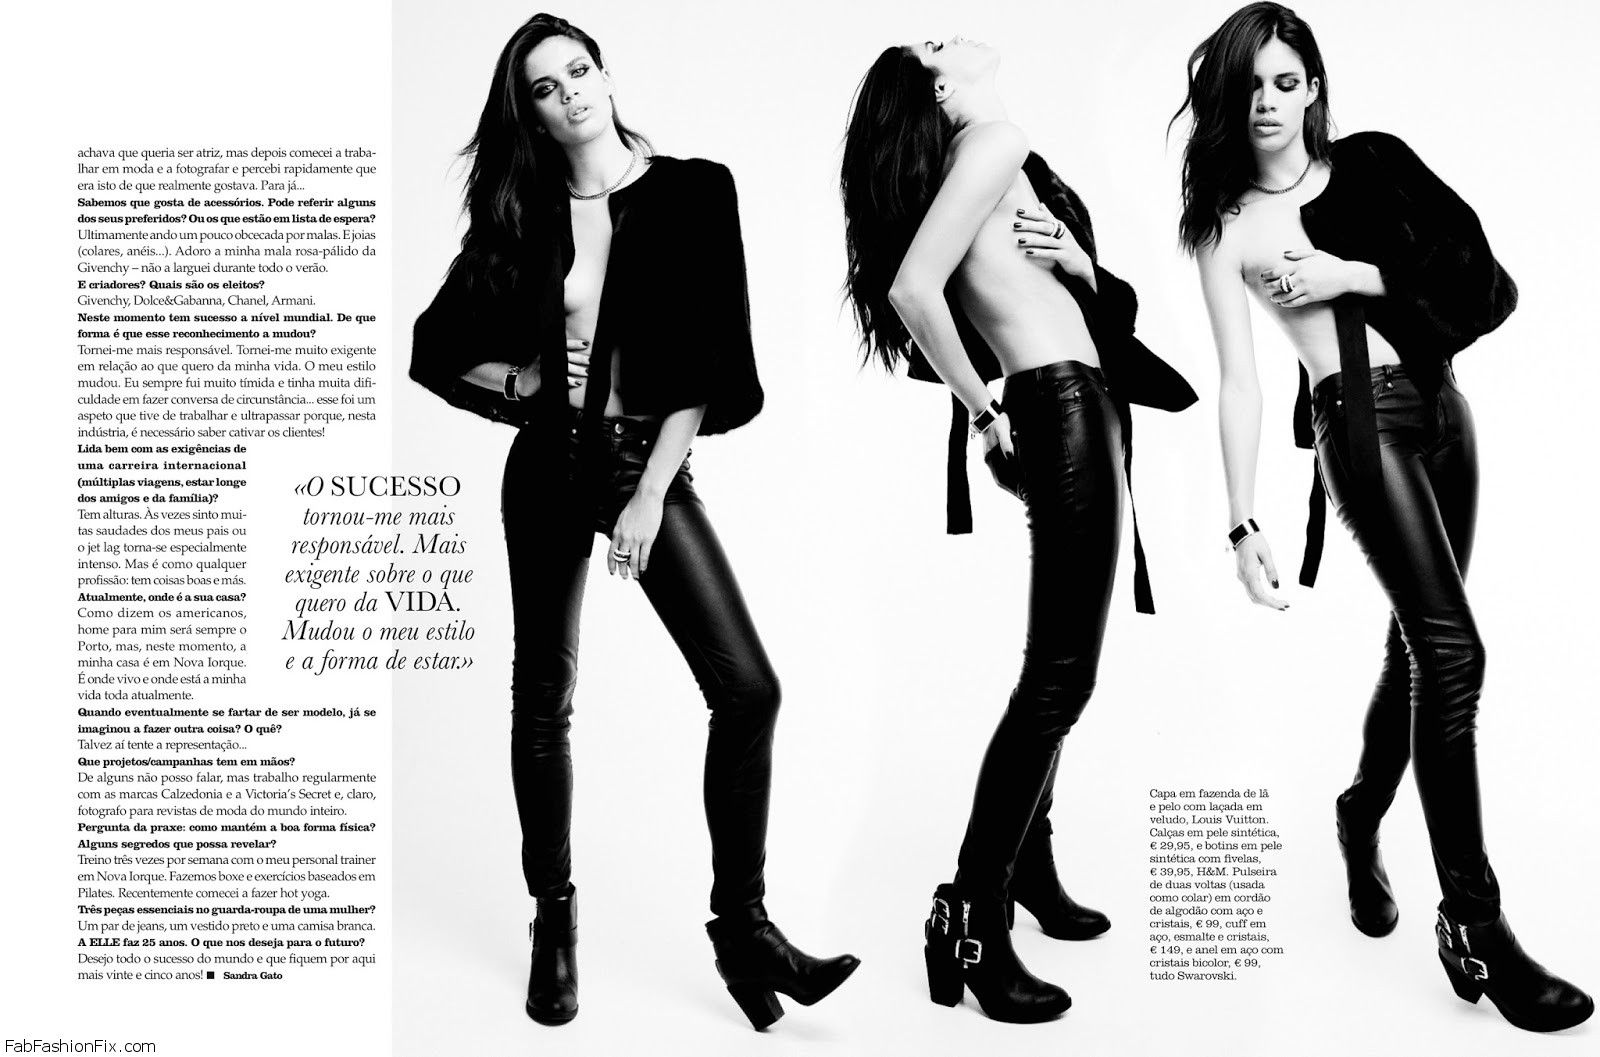 fashion_scans_remastered-sara_sampaio-elle_portugal-october_2013-scanned_by_vampirehorde-hq-7